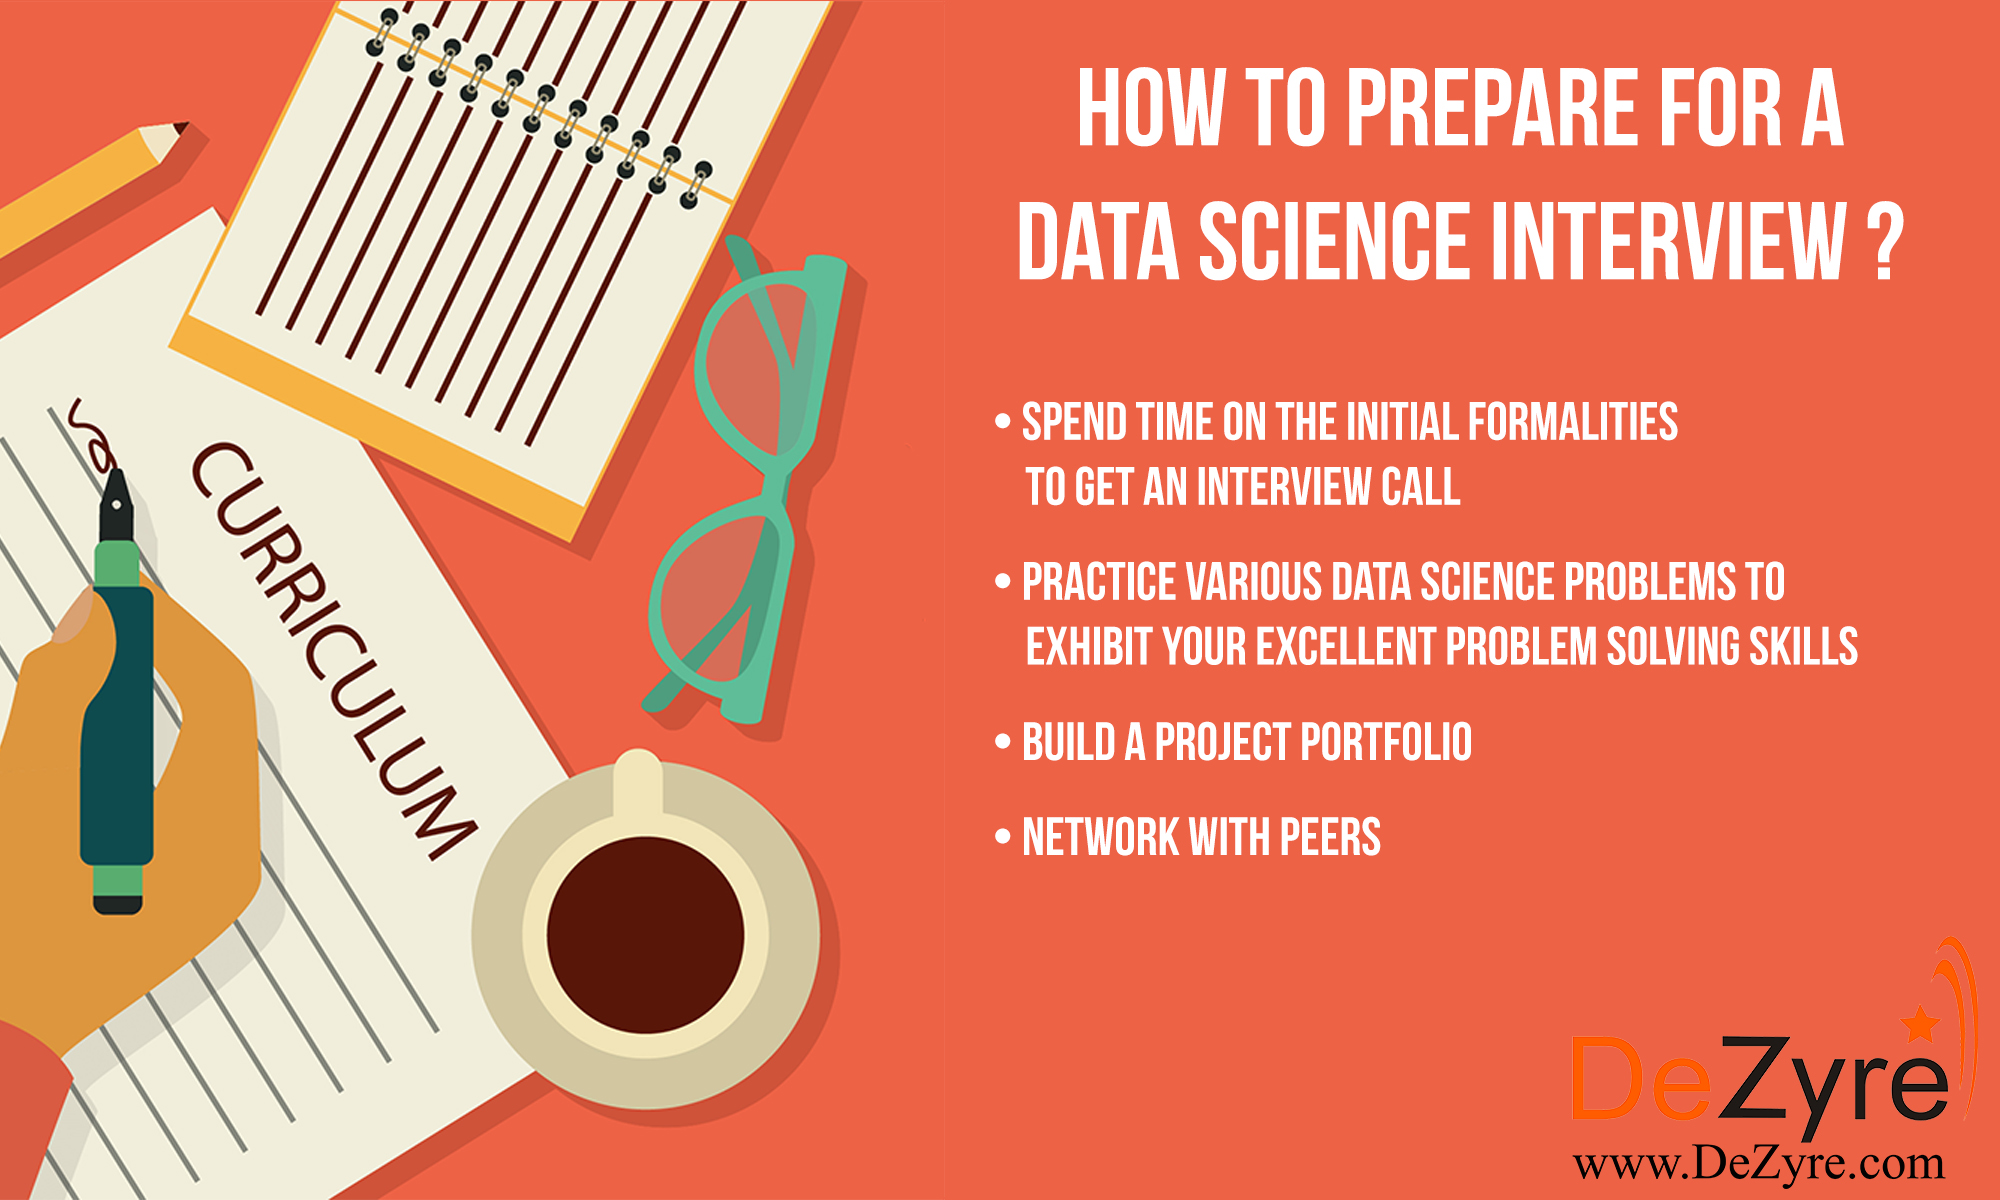 Data Science Interview Preparation Tips